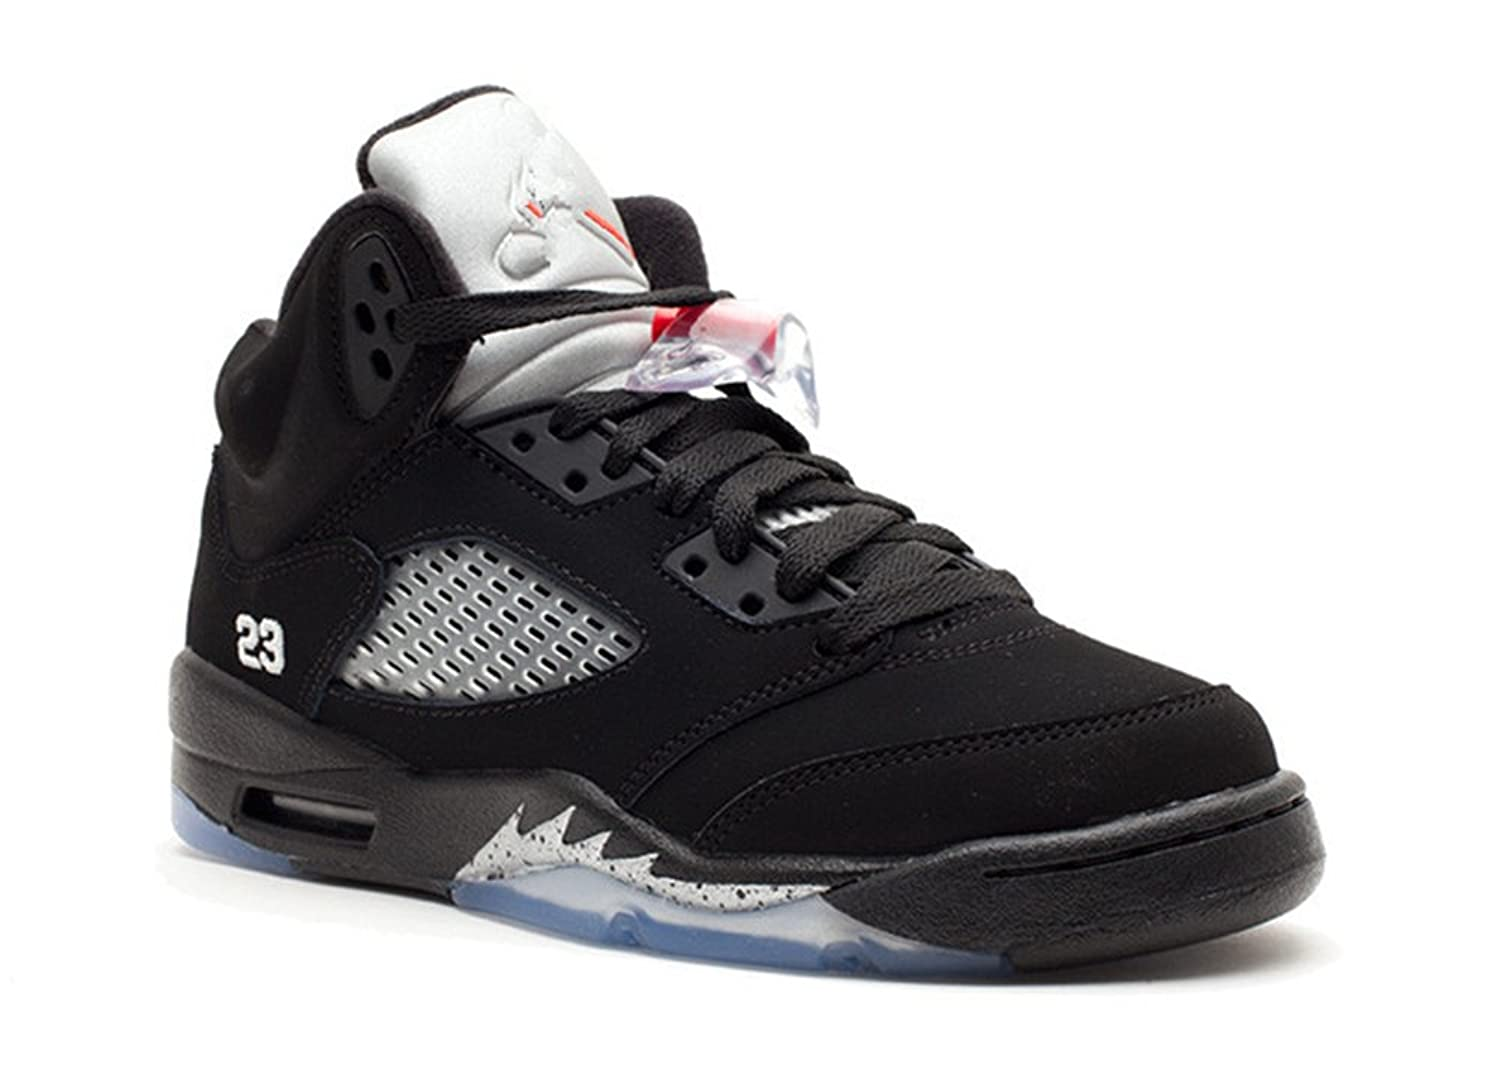 c4128ab92249 stevenok Leather Basketball Shoes Air Jordan 5 Retro gs 2011 release Black  metallic silver vrsty rd